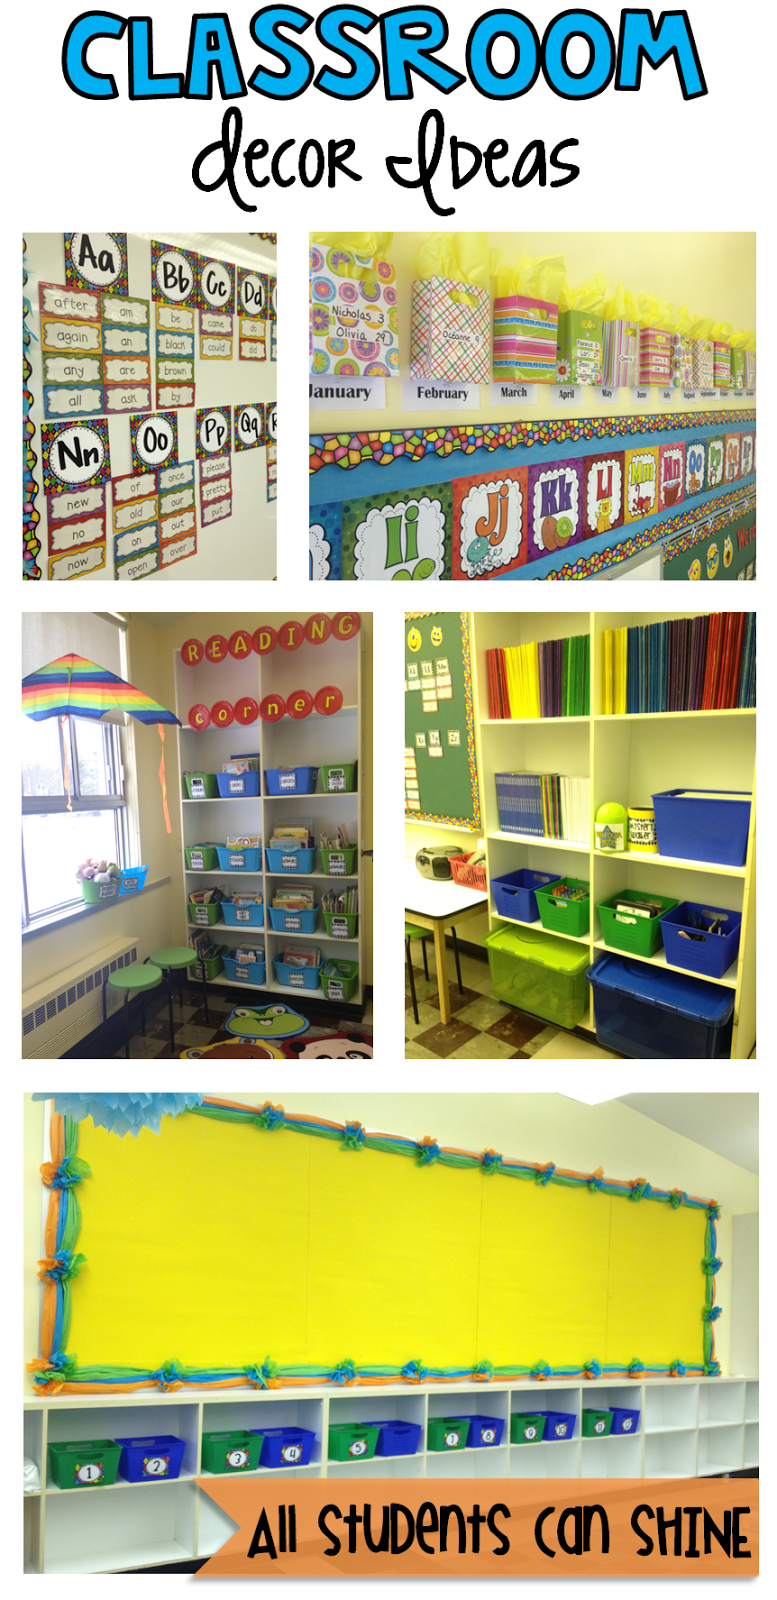 Decor Of Classroom ~ Summer classroom ideas home design and decor reviews